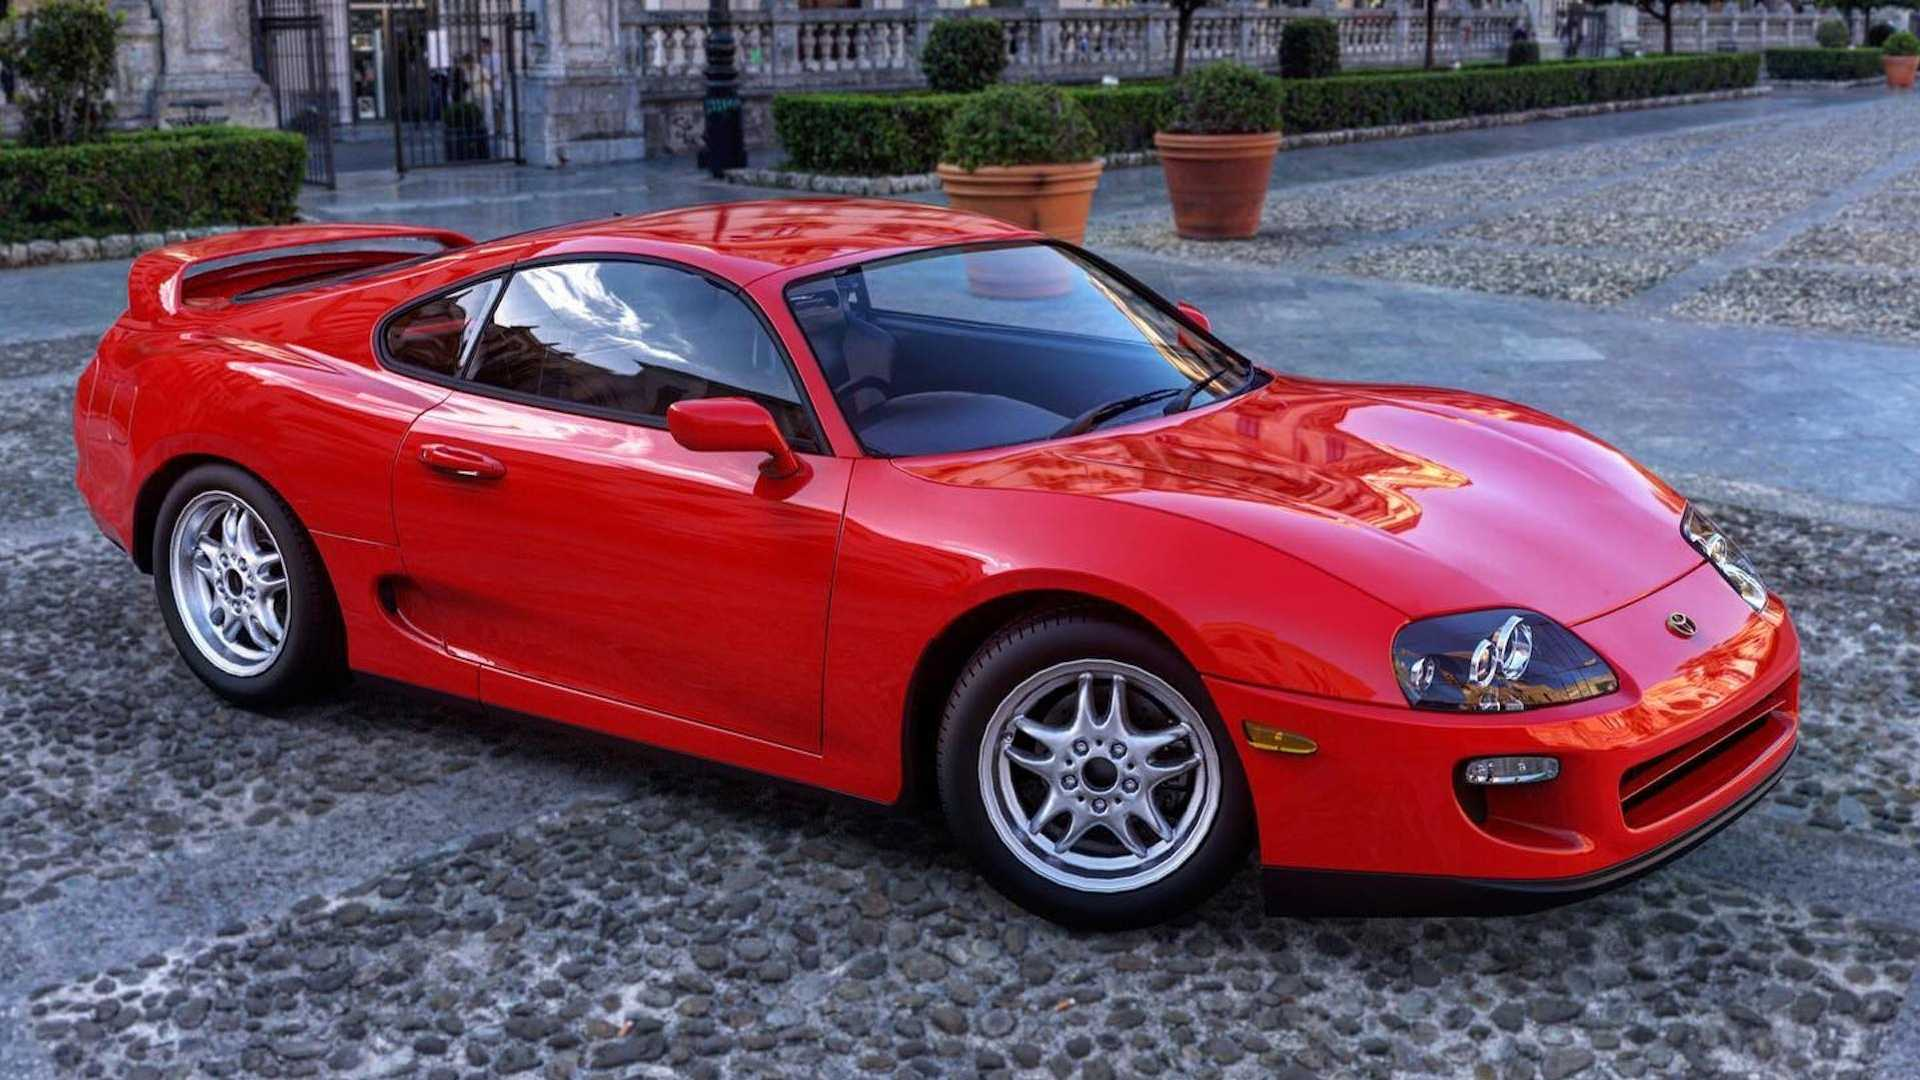 1996 Mid-Engined Toyota Supra Rendering By Abimelec Design